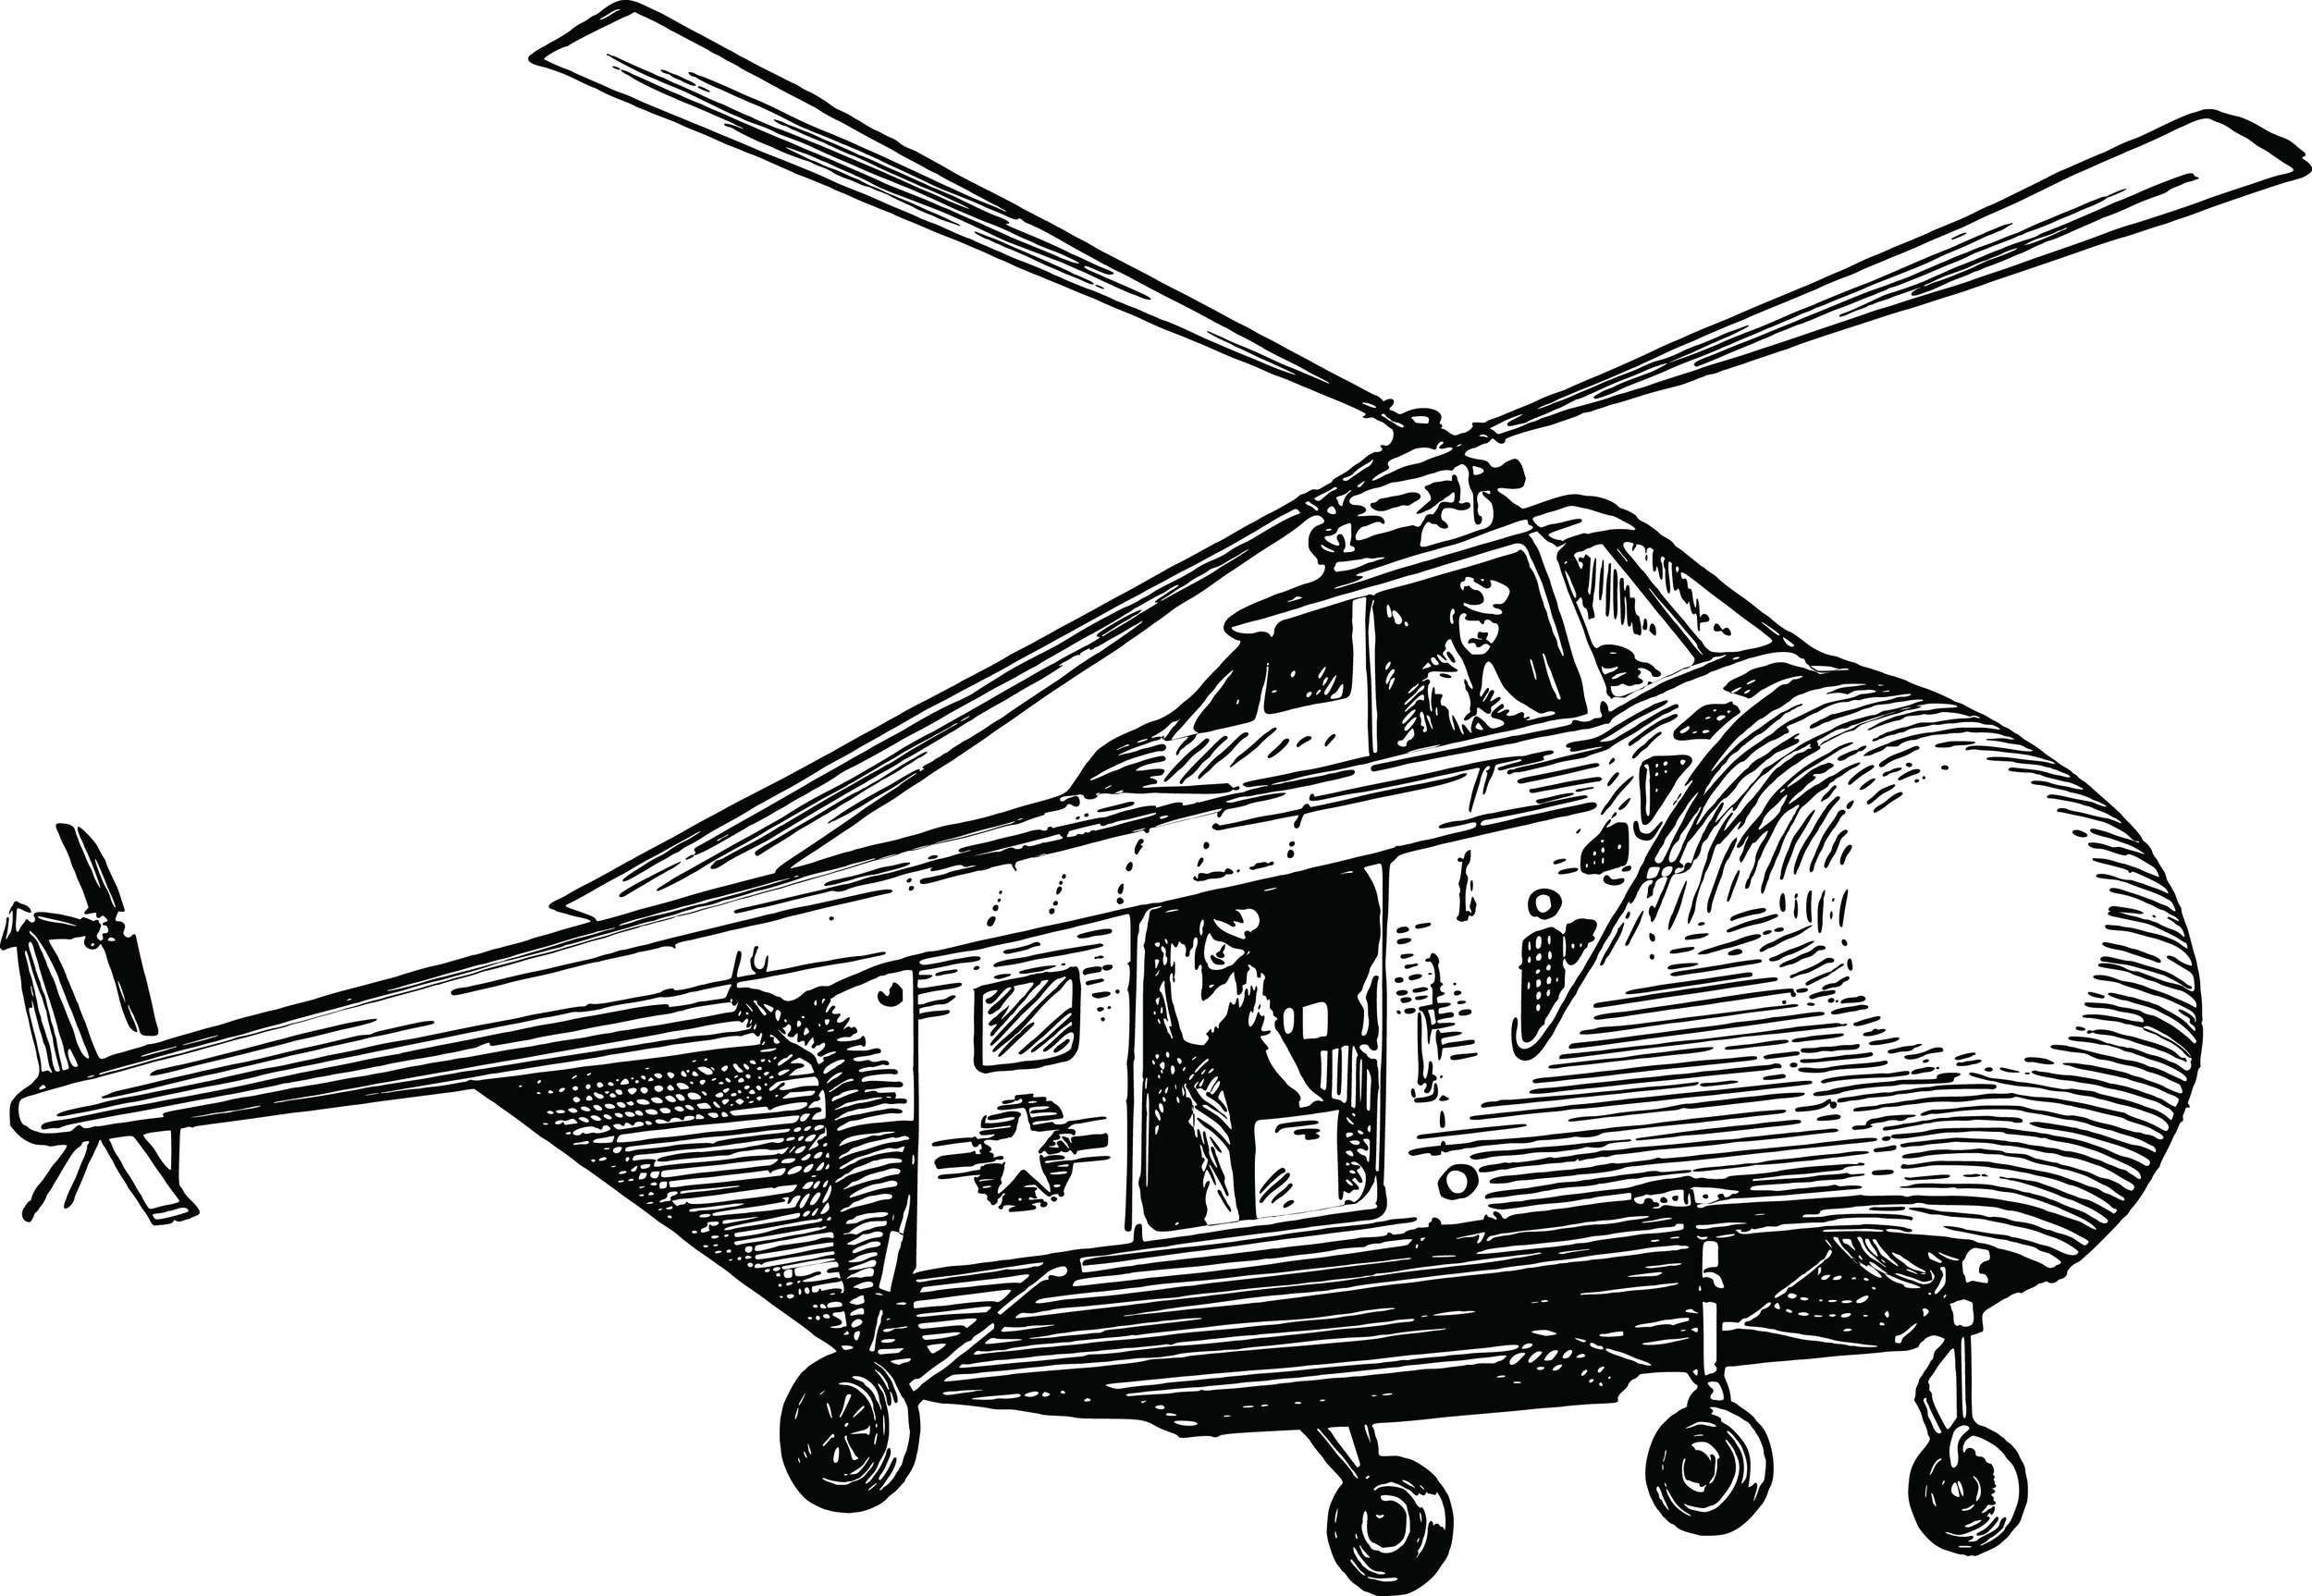 610-Free-Clipart-Of-A-Military-Rescue-Helicopter.jpg